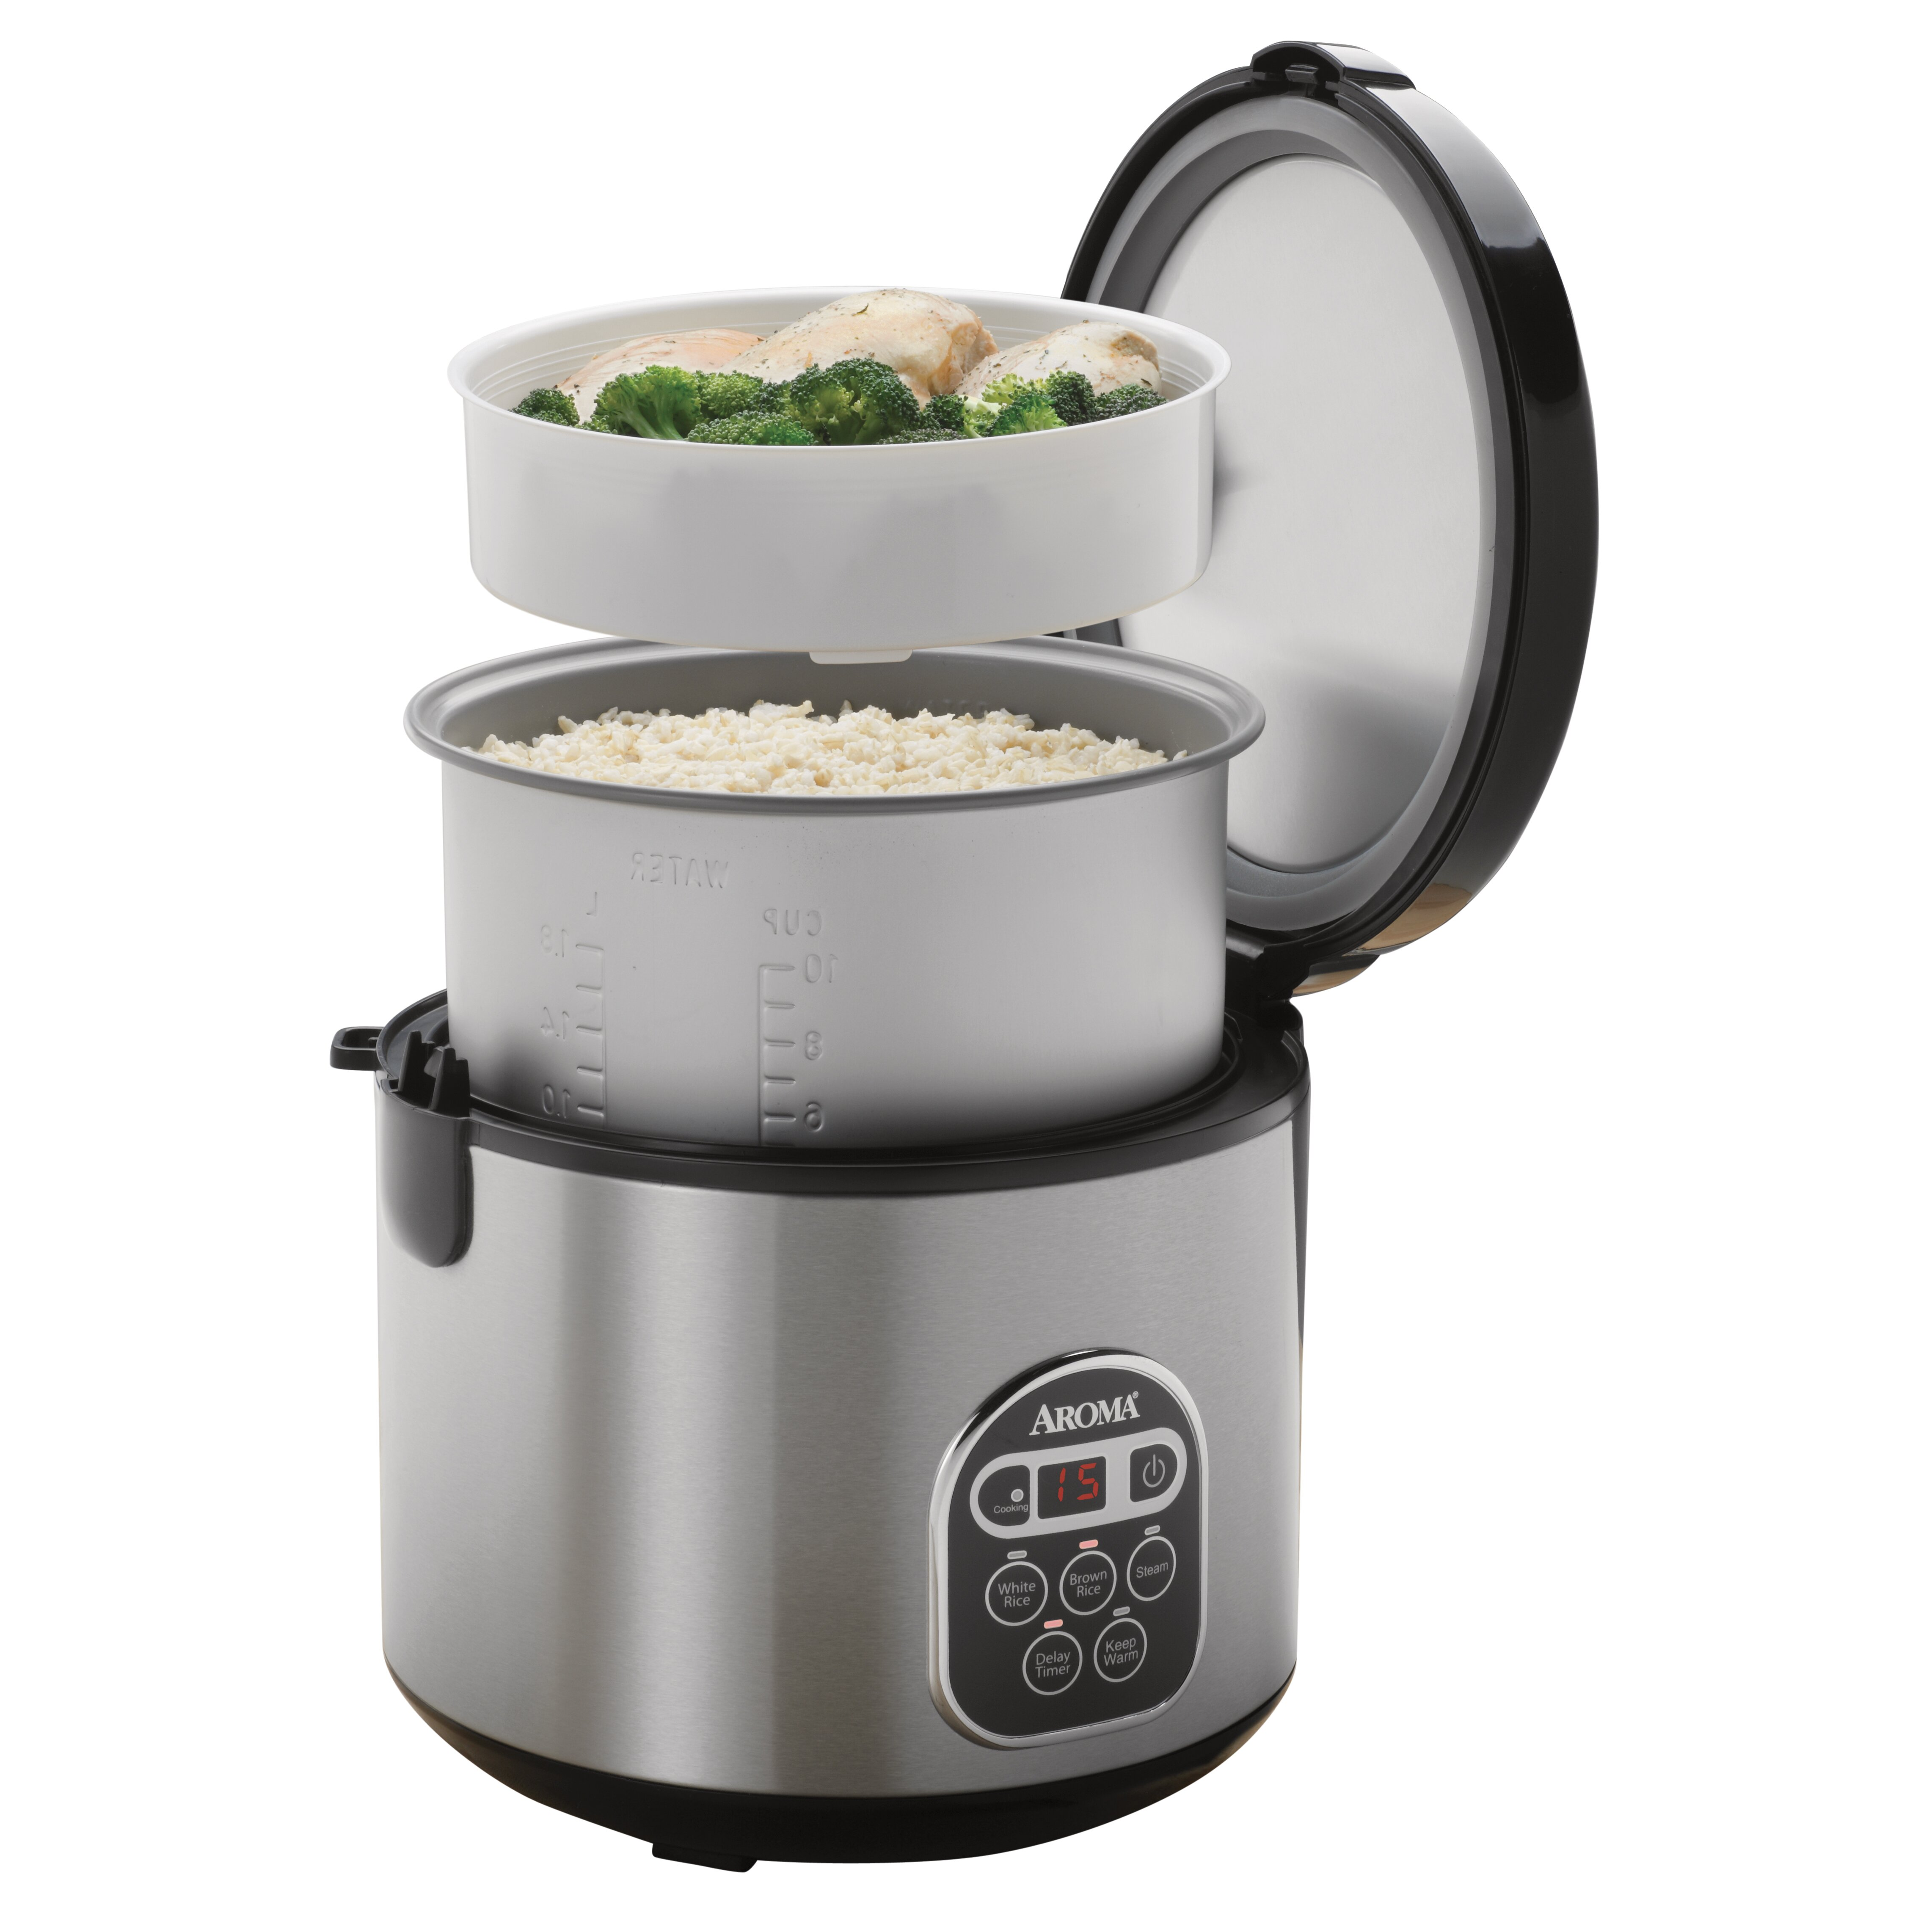 Aroma 6 cup Rice Cooker and Food Steamer Review - YouTube